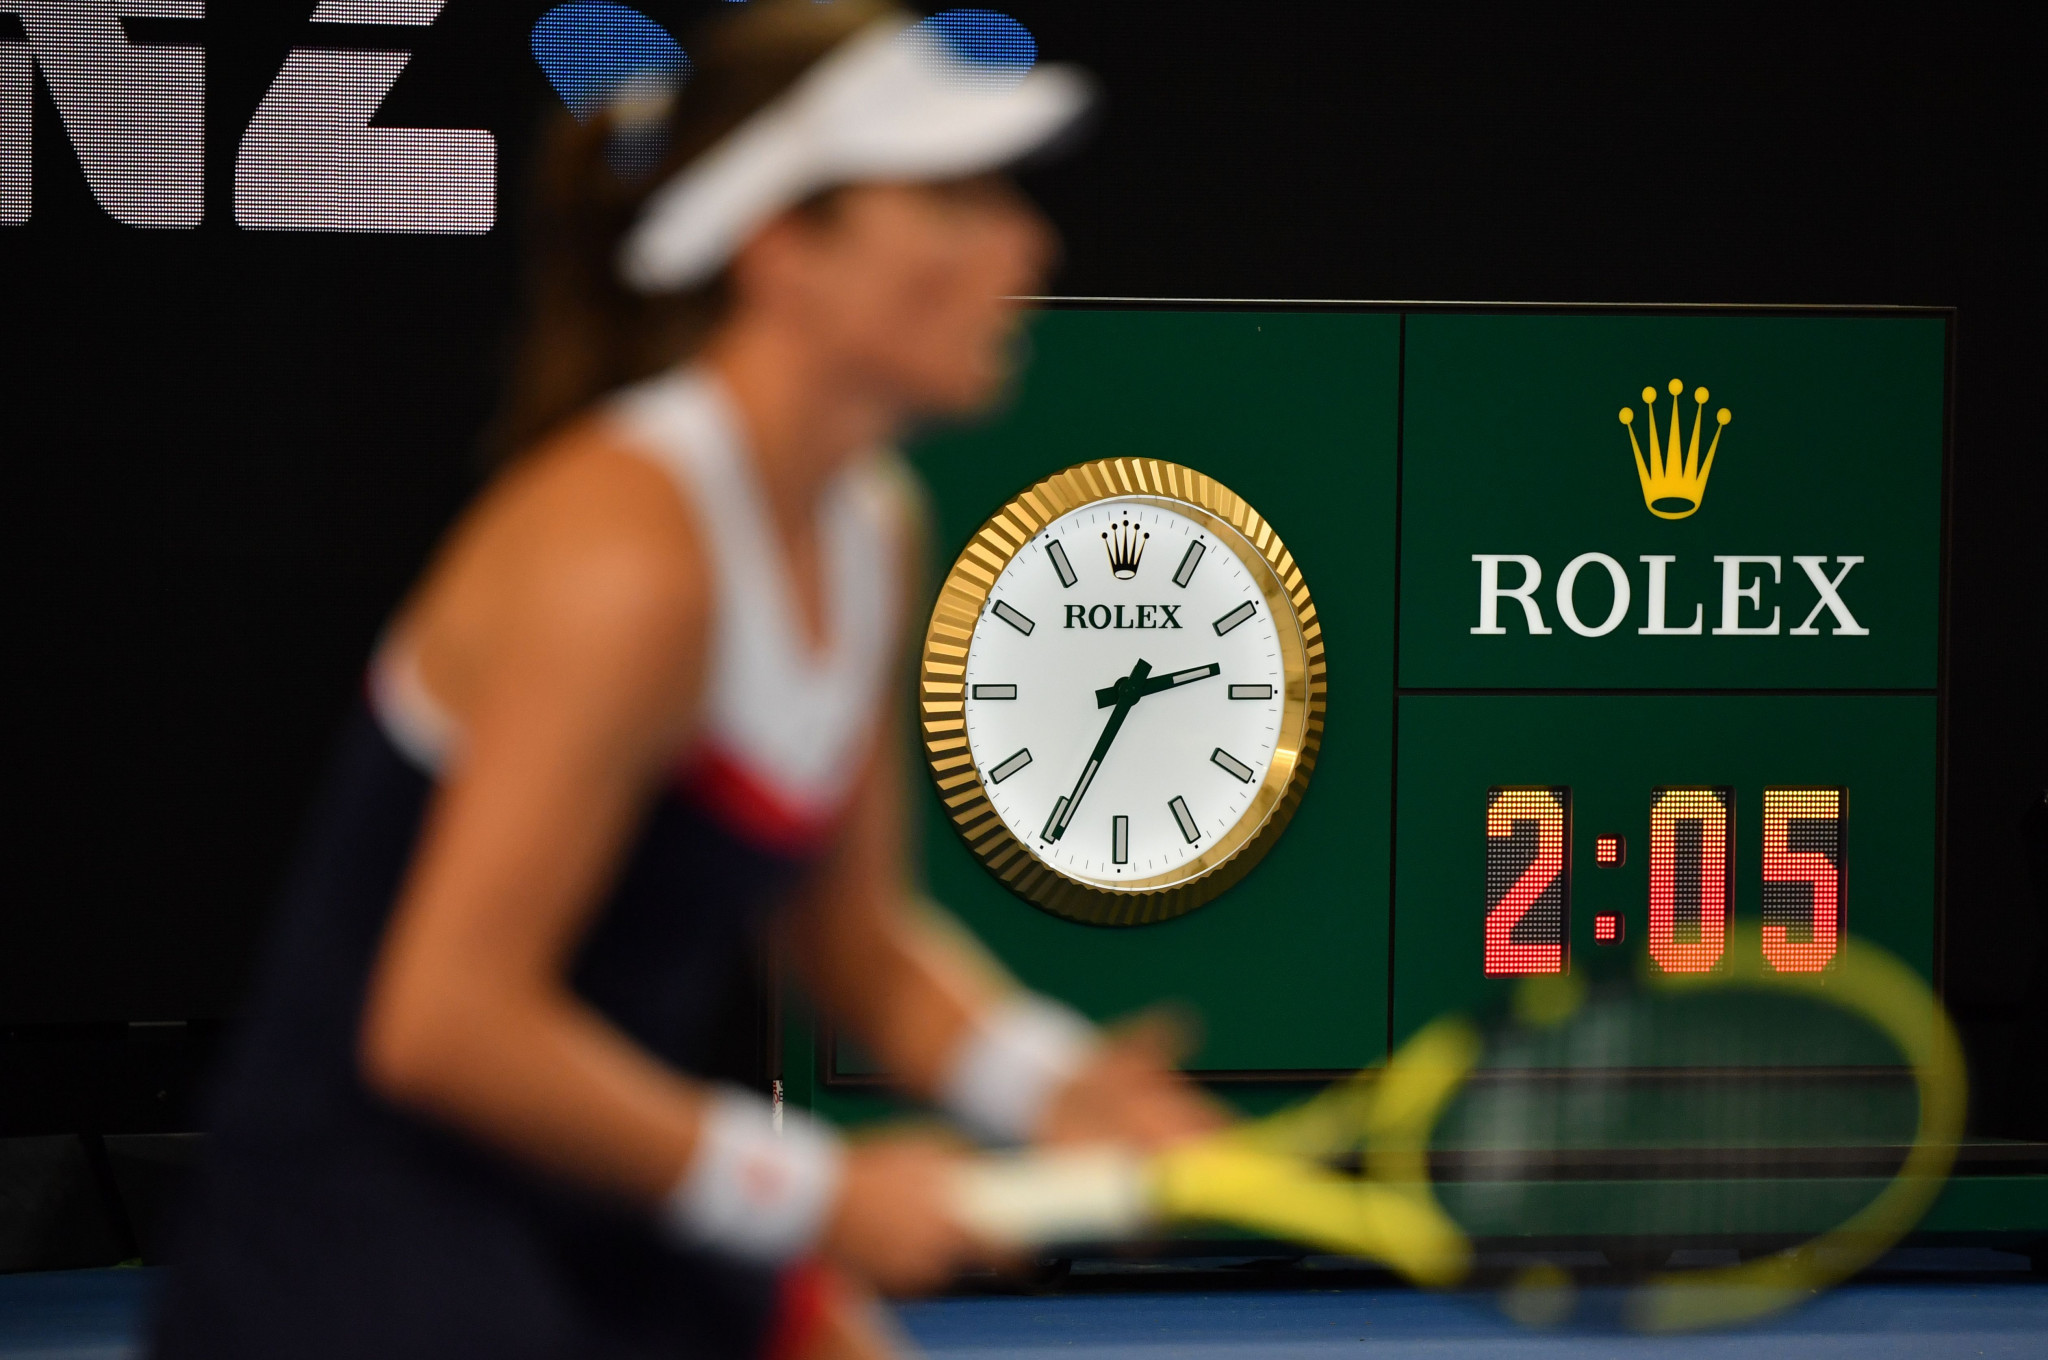 The match between Johanna Konta and Garbine Muguruza did not start until 12.30am local time ©Getty Images